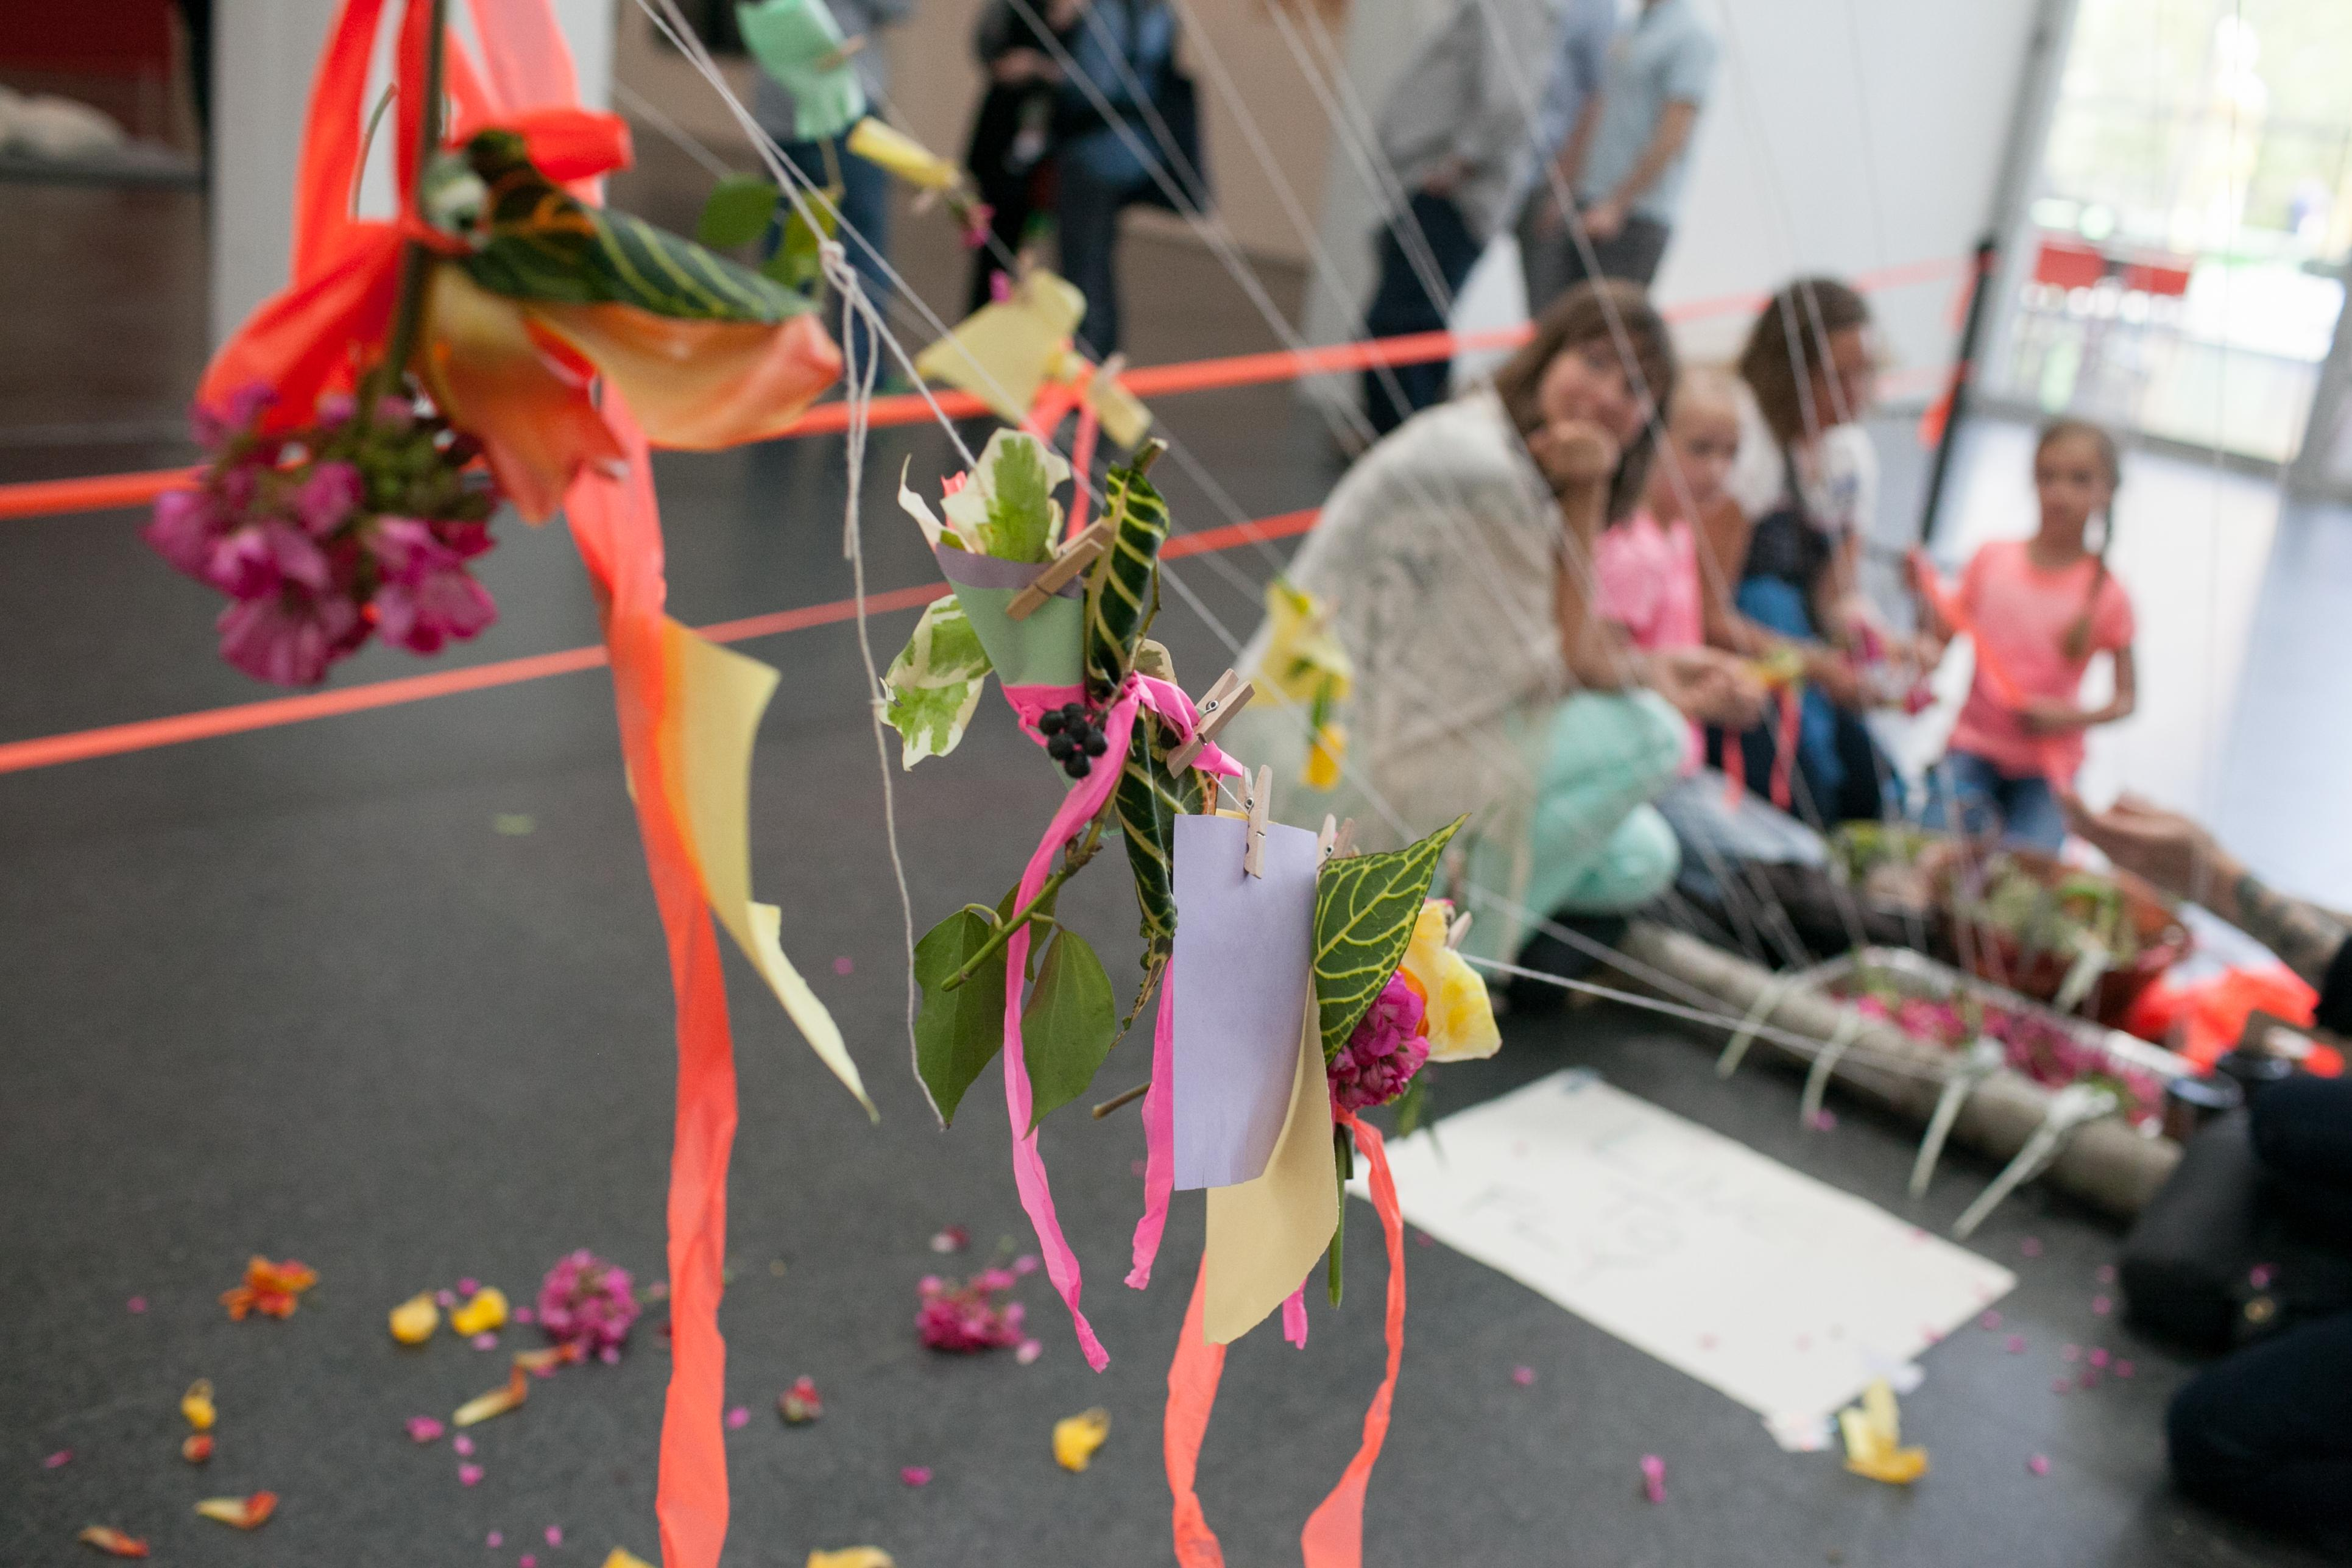 Adults and kids look through an installation of fake flowers and ribbons attached to strings with clothespins in the MCA's Atrium.